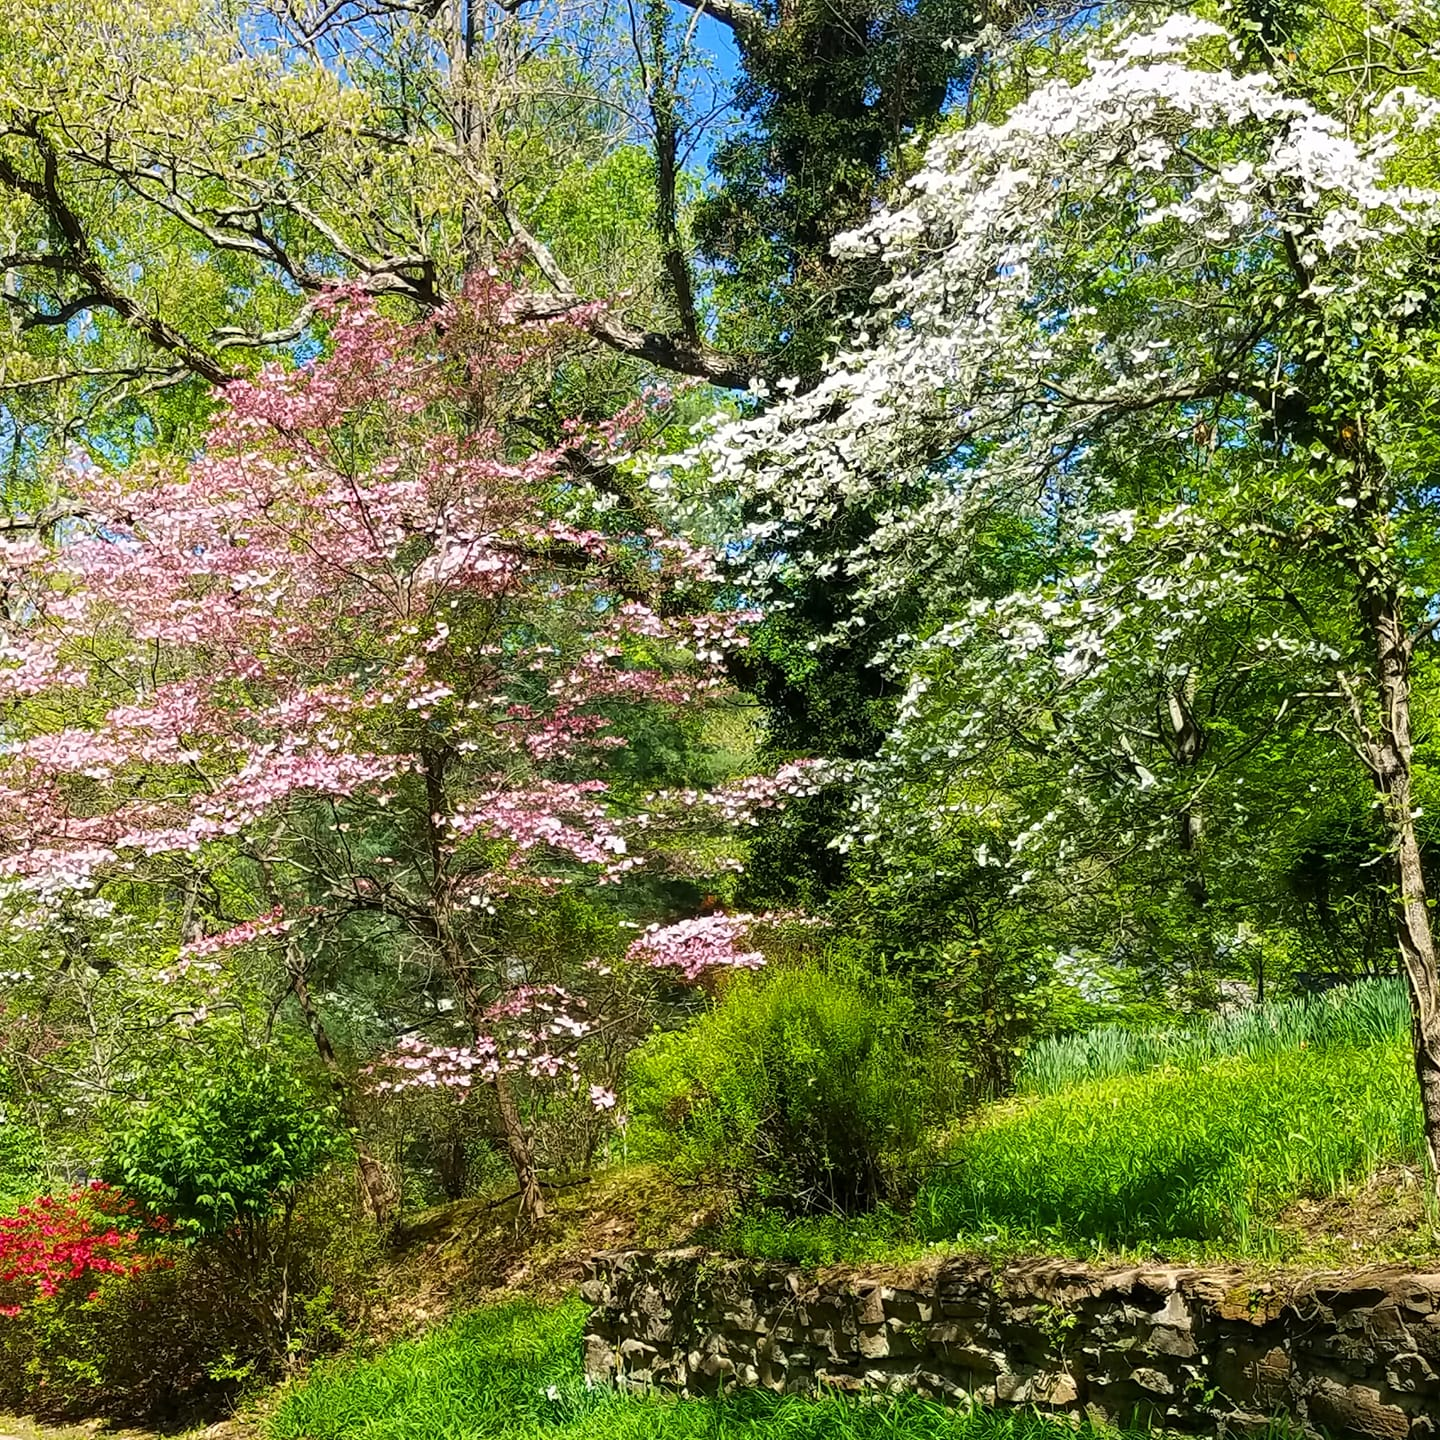 dogwood trees blooming in spring Kentucky spring dogwood trees